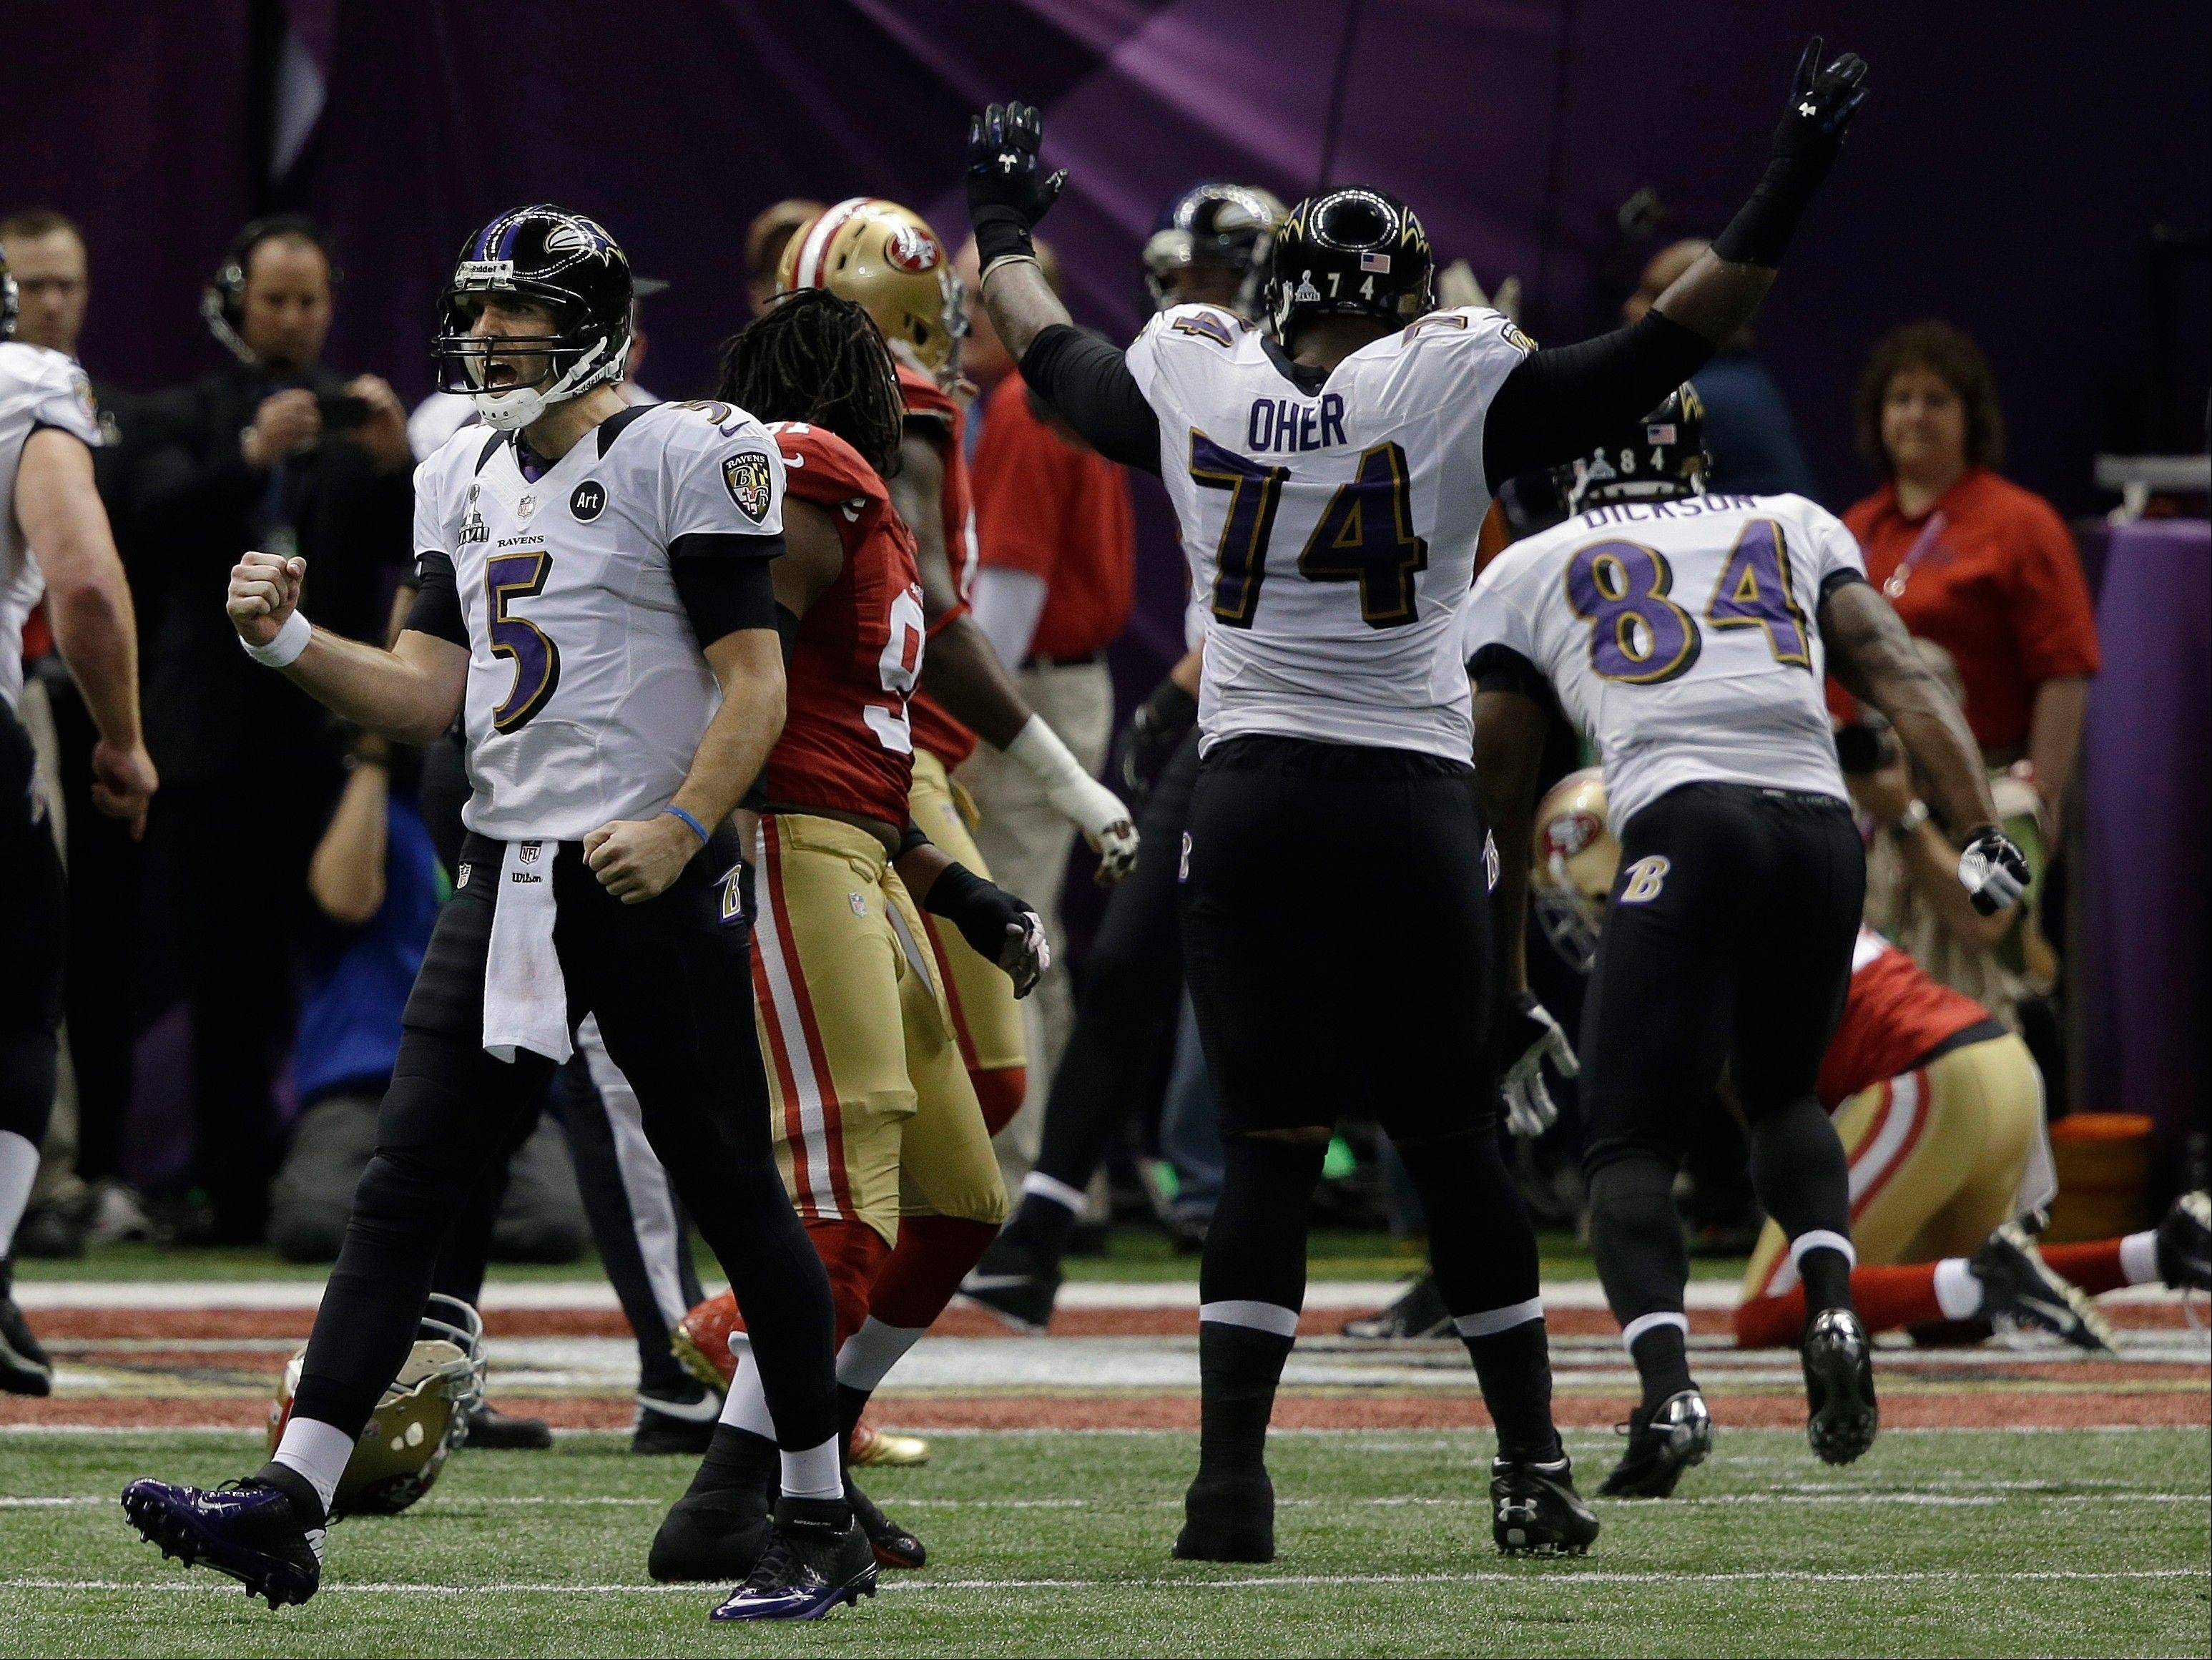 Baltimore Ravens quarterback Joe Flacco (5) reacts after throwing a 1-yard touchdown pass to tight end Dennis Pitta against the San Francisco 49ers during the first half.